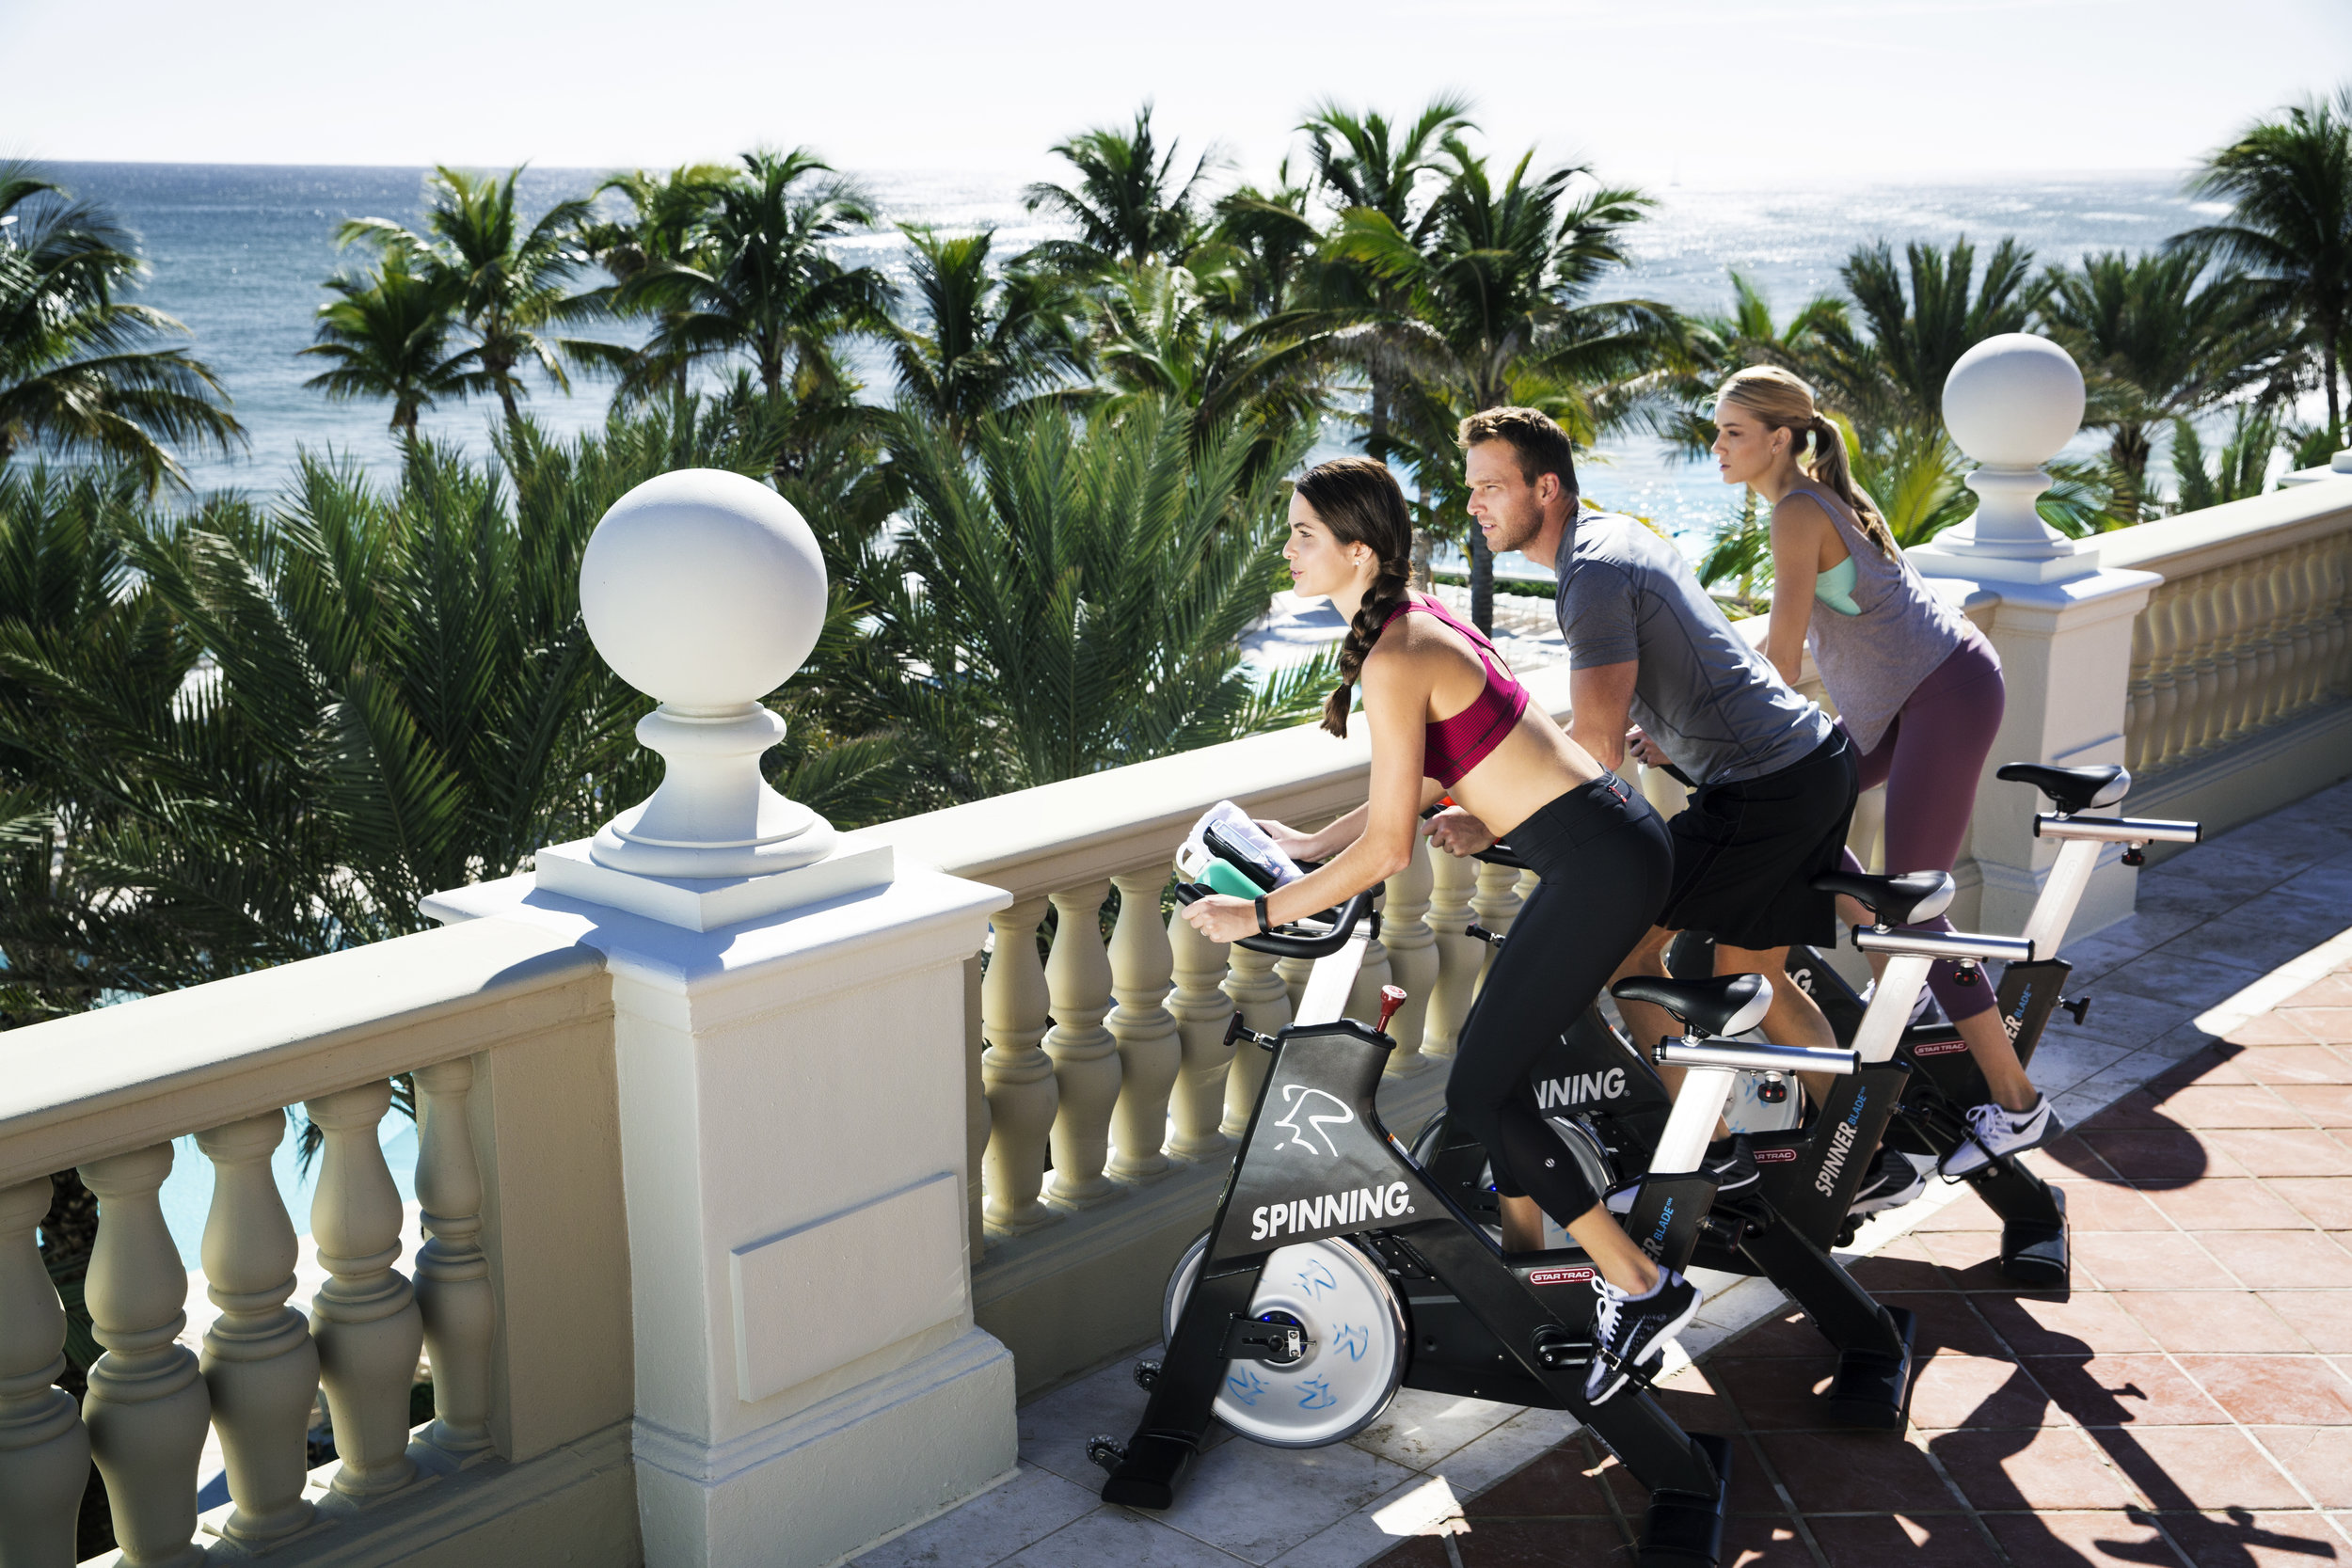 Cycling bikes on The Breakers' outdoor Ocean Fitness center terrace, which overlooks the ocean